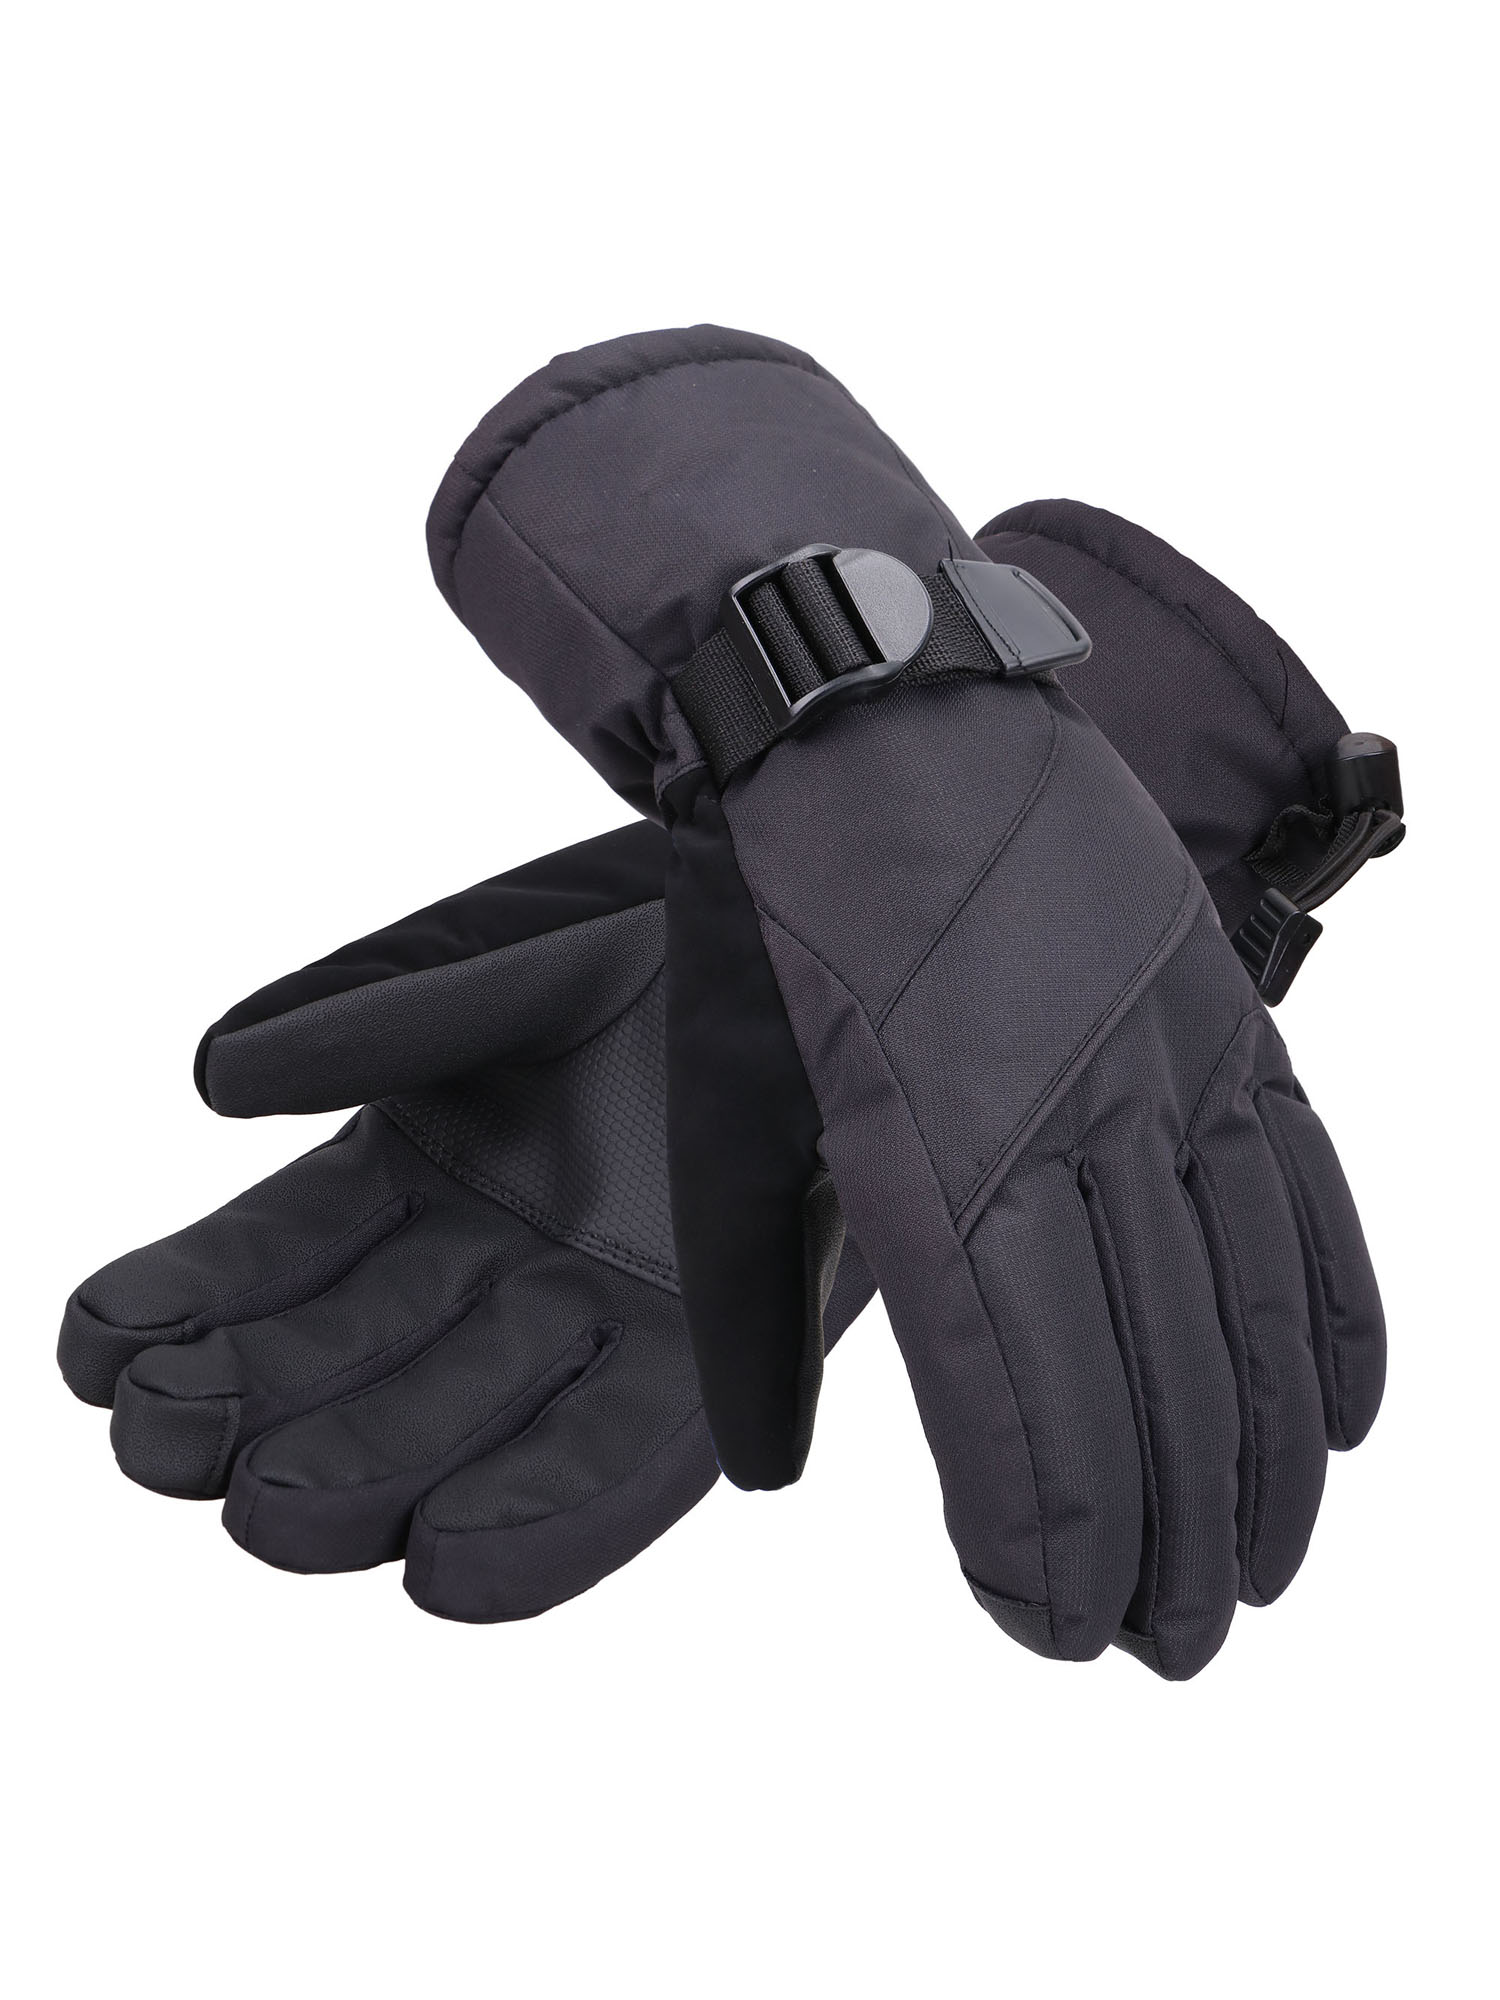 Toppers Mens Waterproof Winter Thinsulate Lined Snowboard Ski Gloves Black1 L